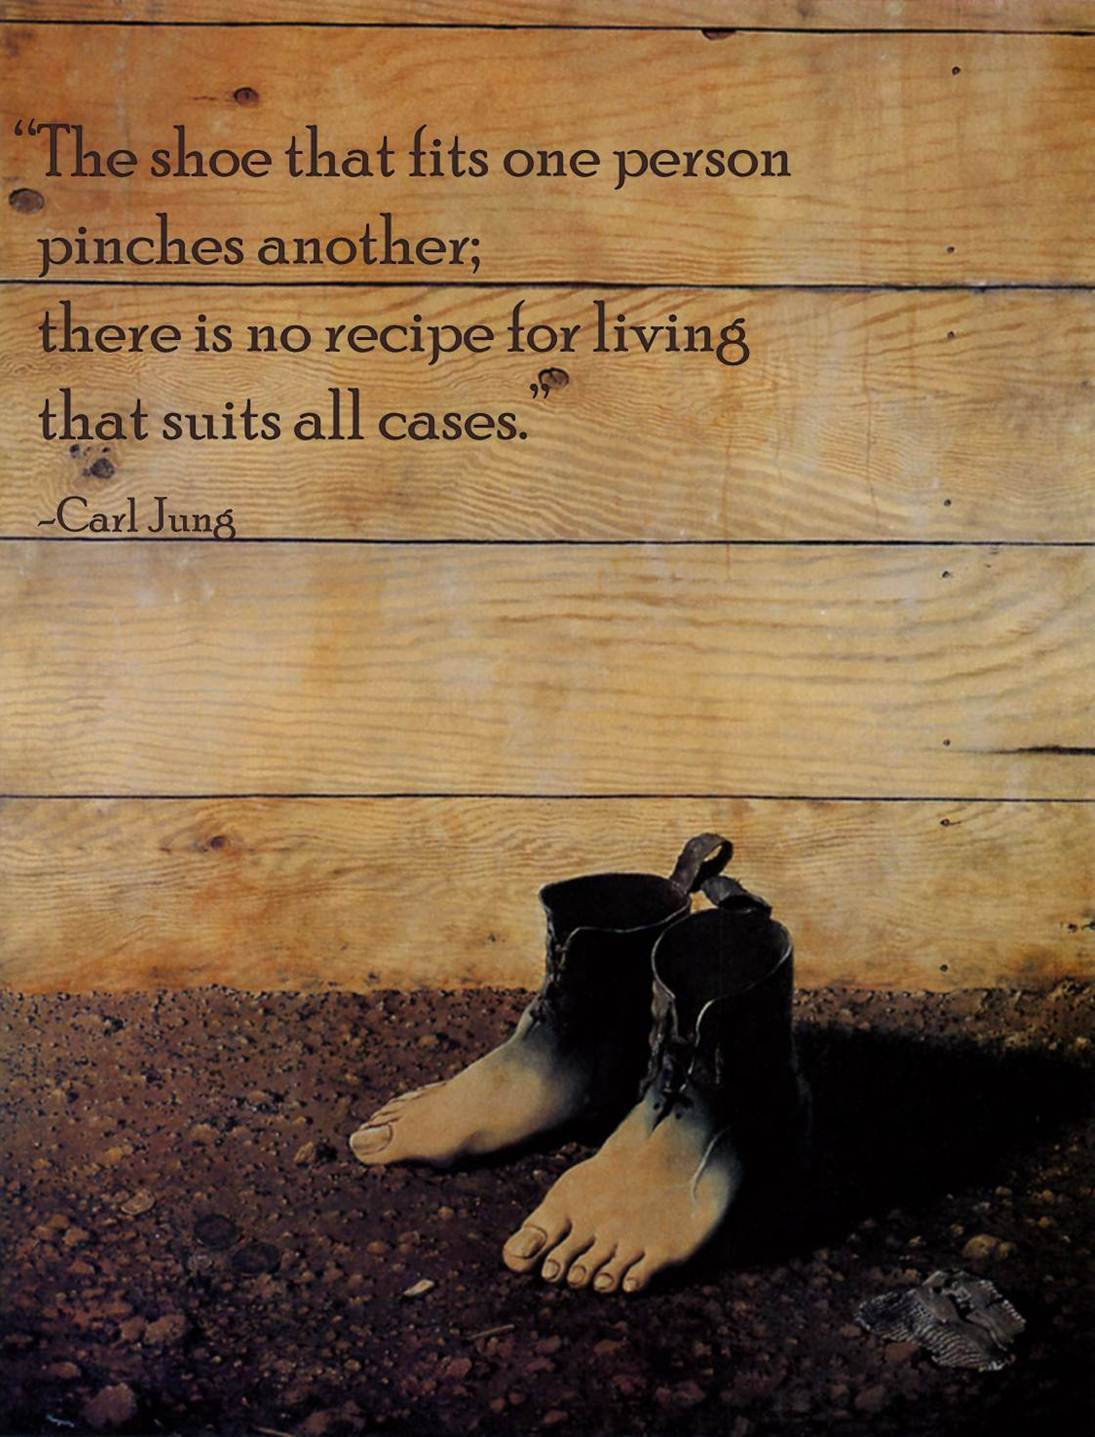 The shoe that fits one person, pinches another; there is no recipe for living that suits all cases. - Carl Jung